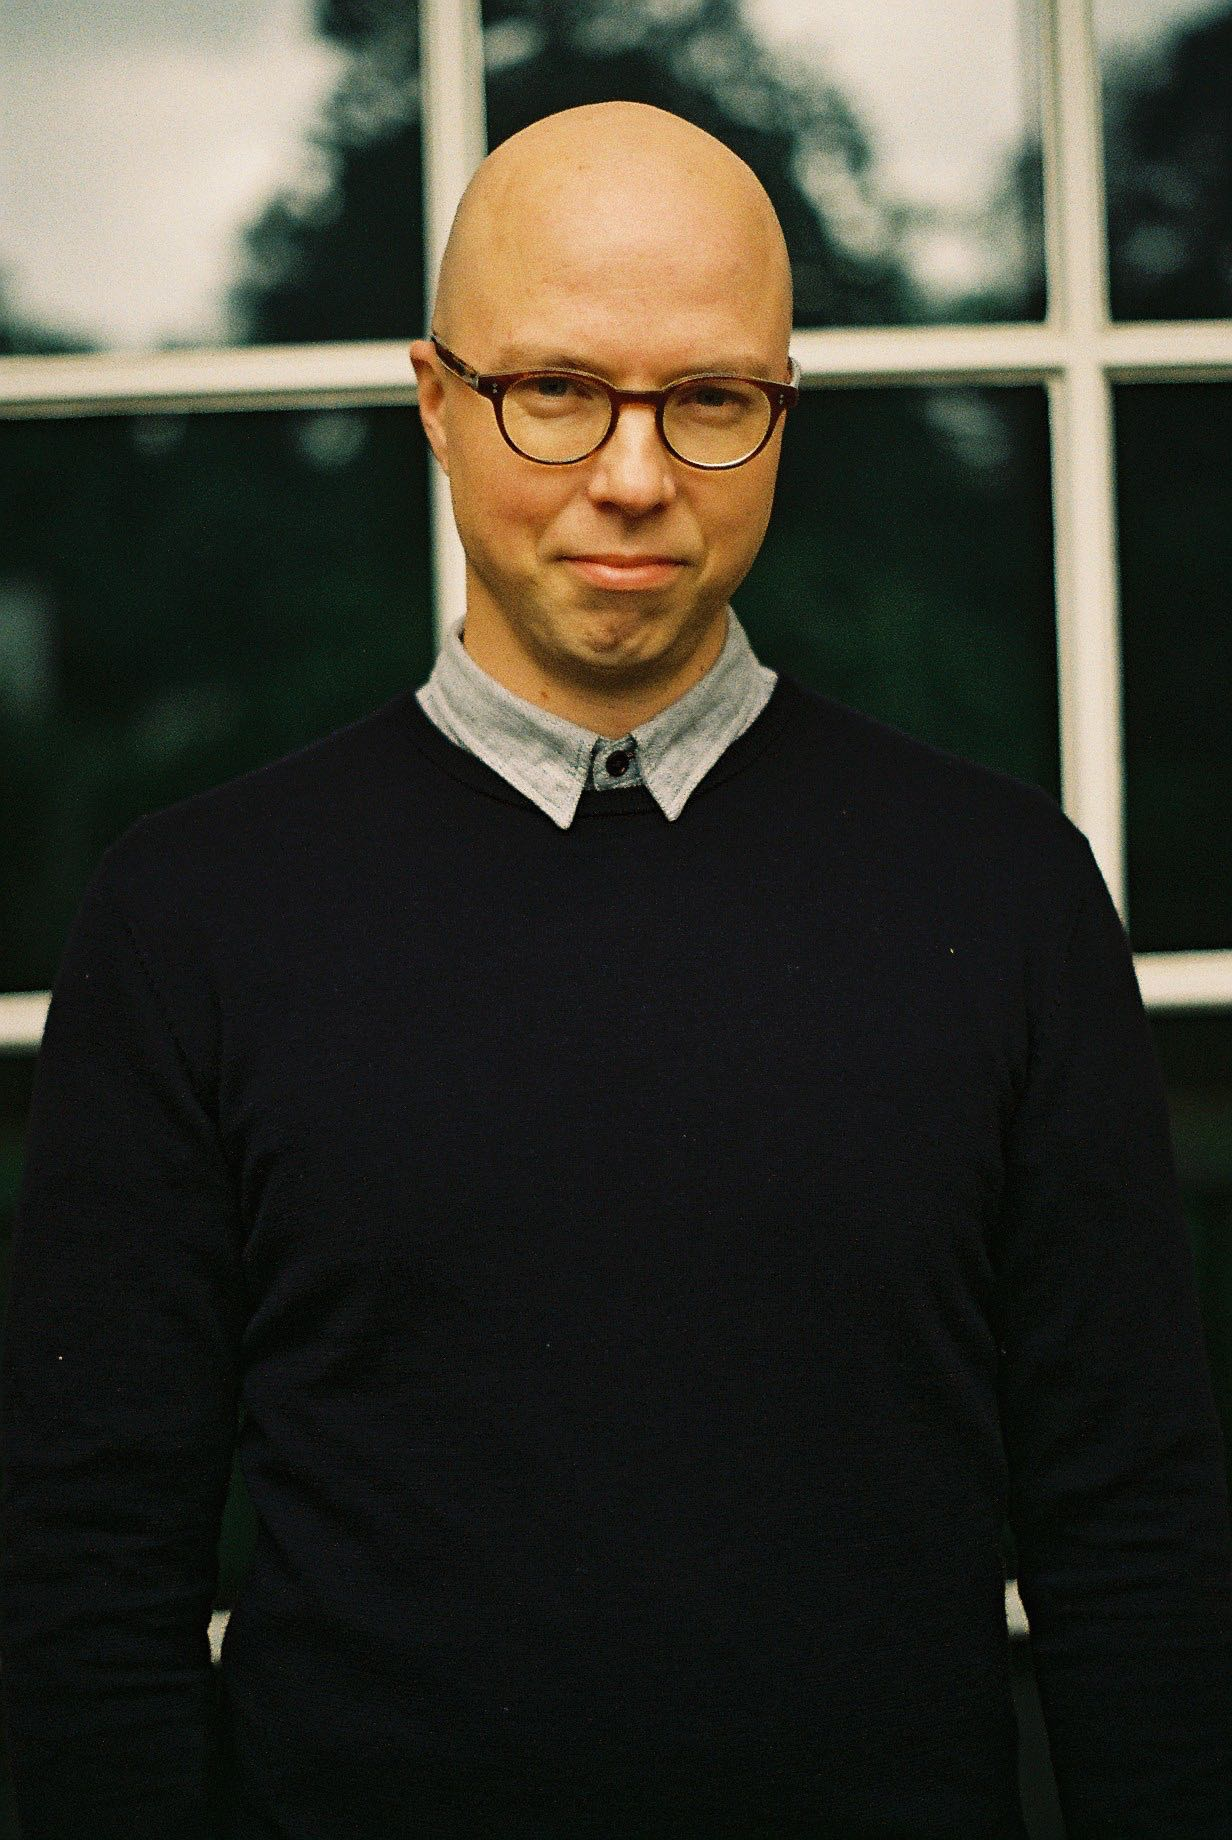 Photo of Juha Saarikangas